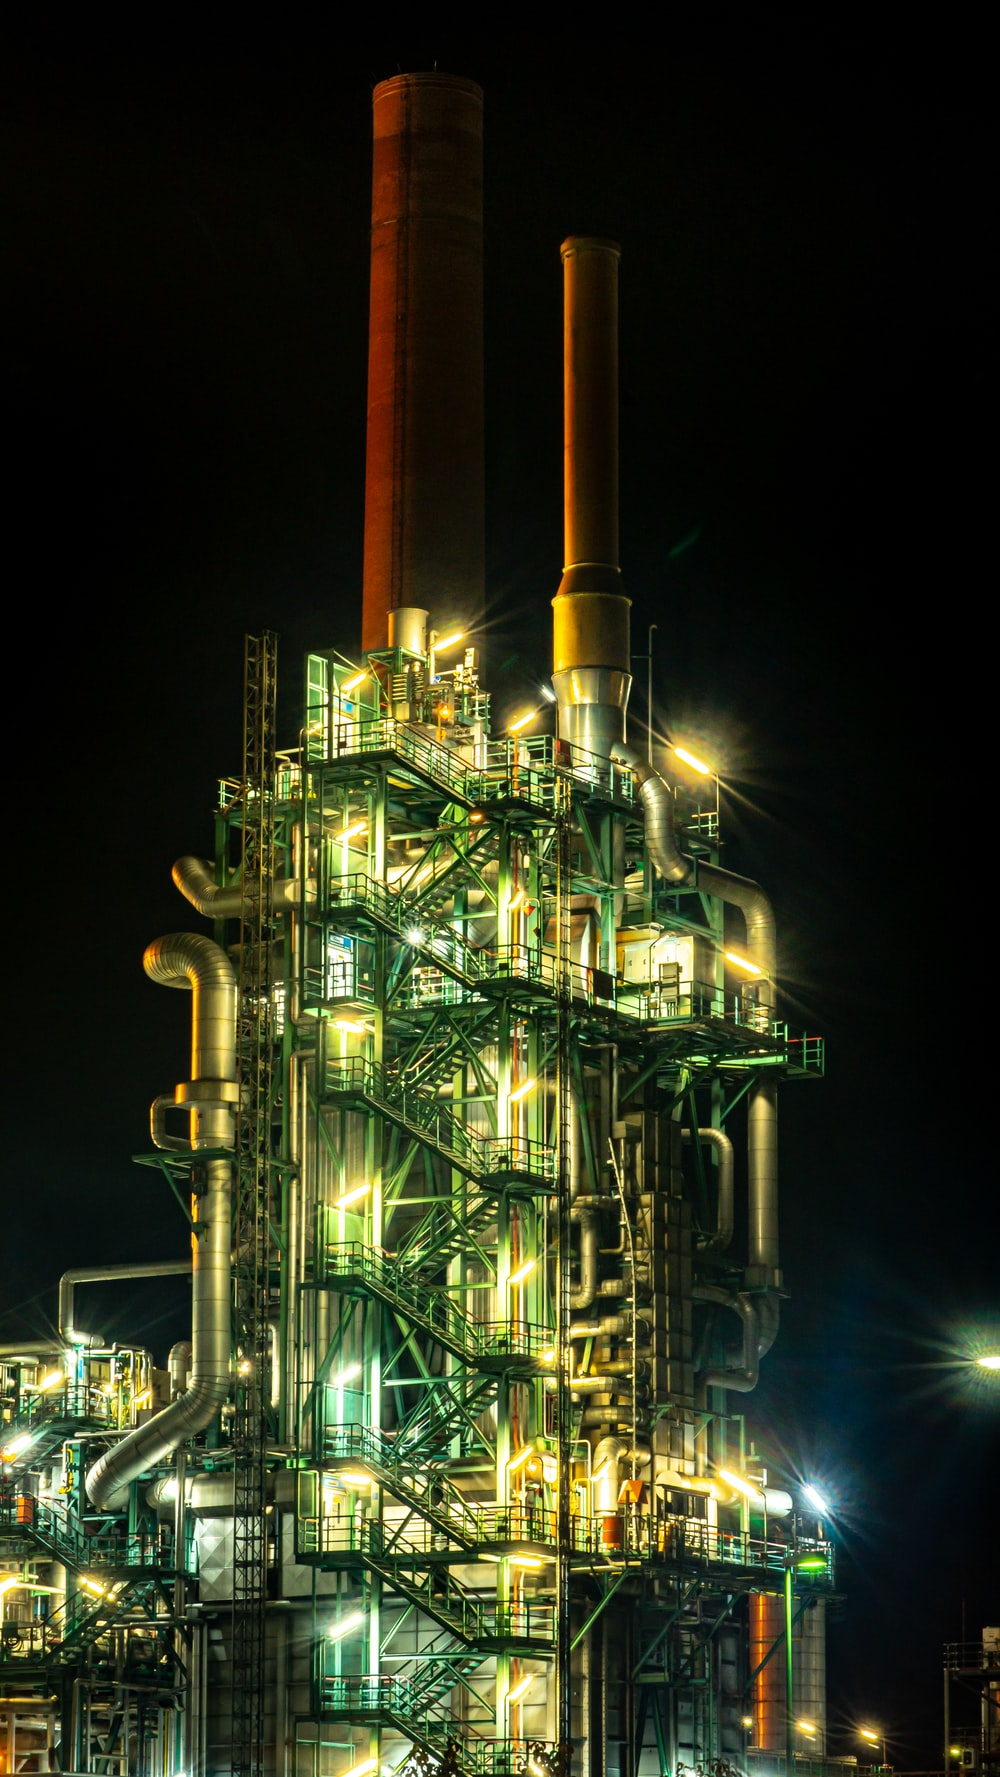 brown and black factory during night time